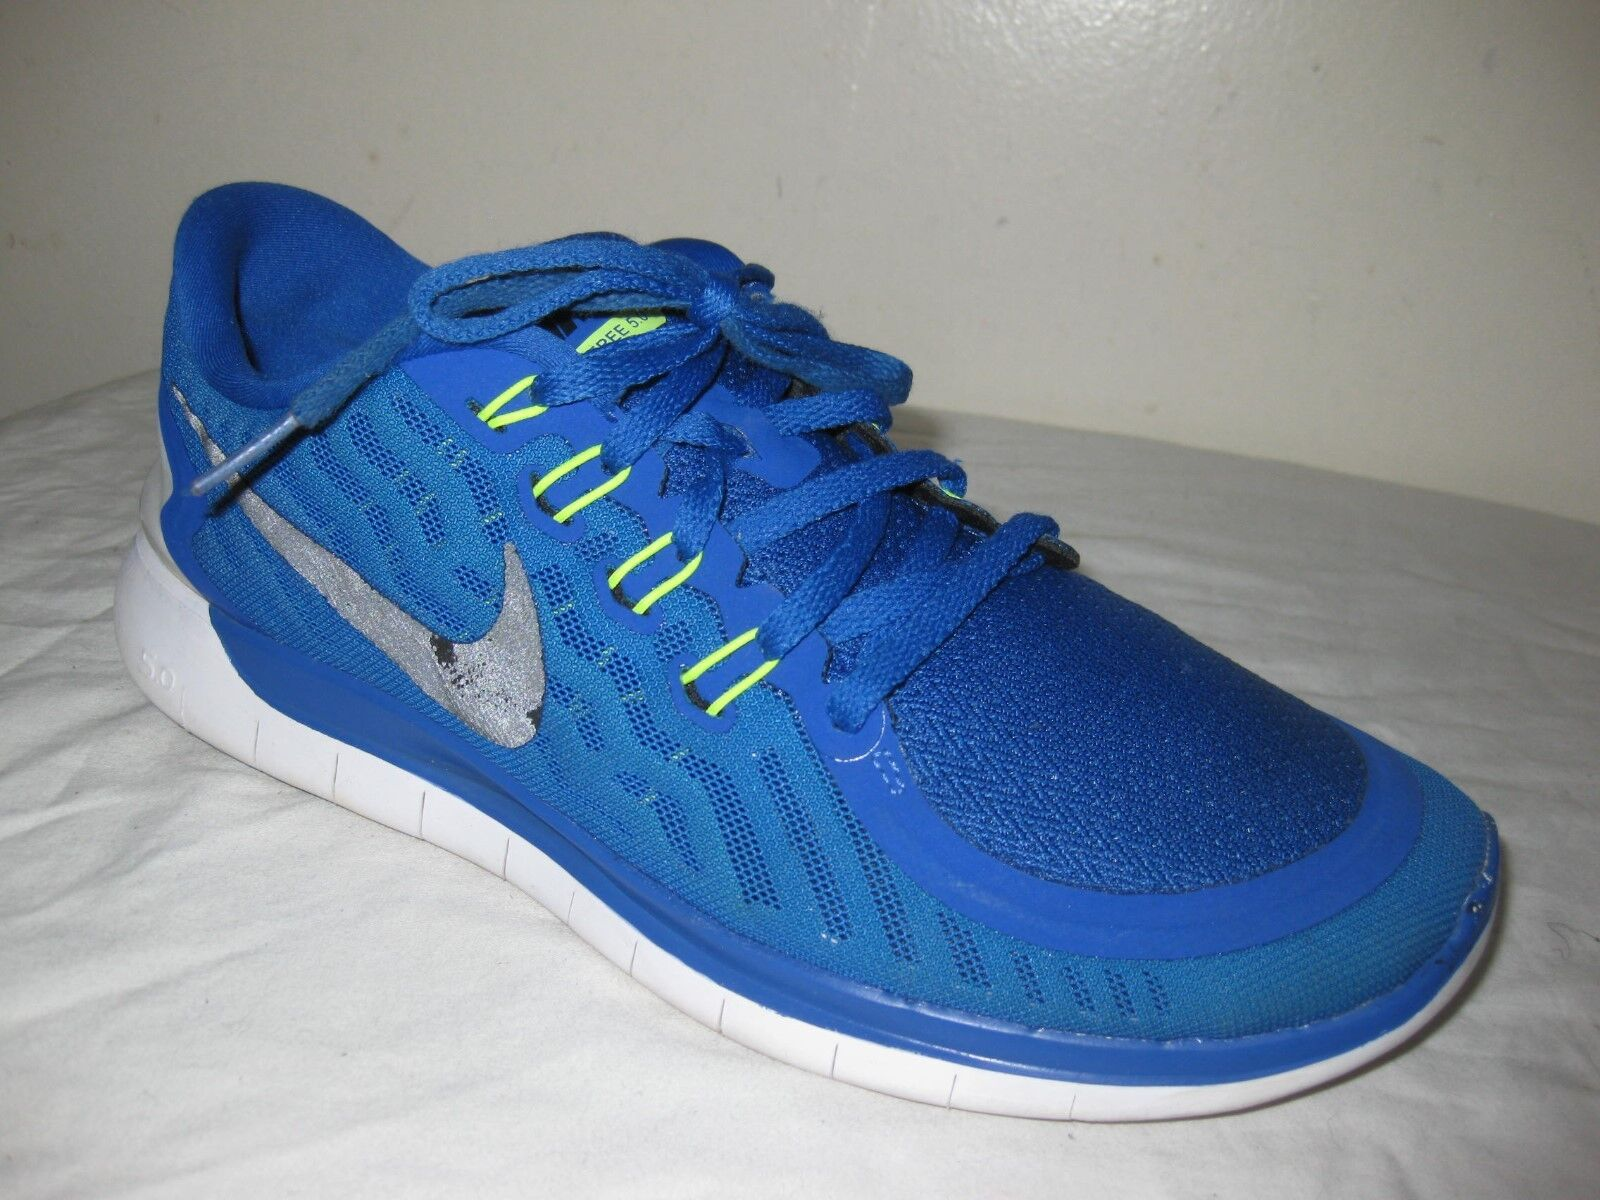 b639faa5234 Nike Free 5.0 Athletic Running Shoes Men s Size 42.5       9 8ca0d3 ...